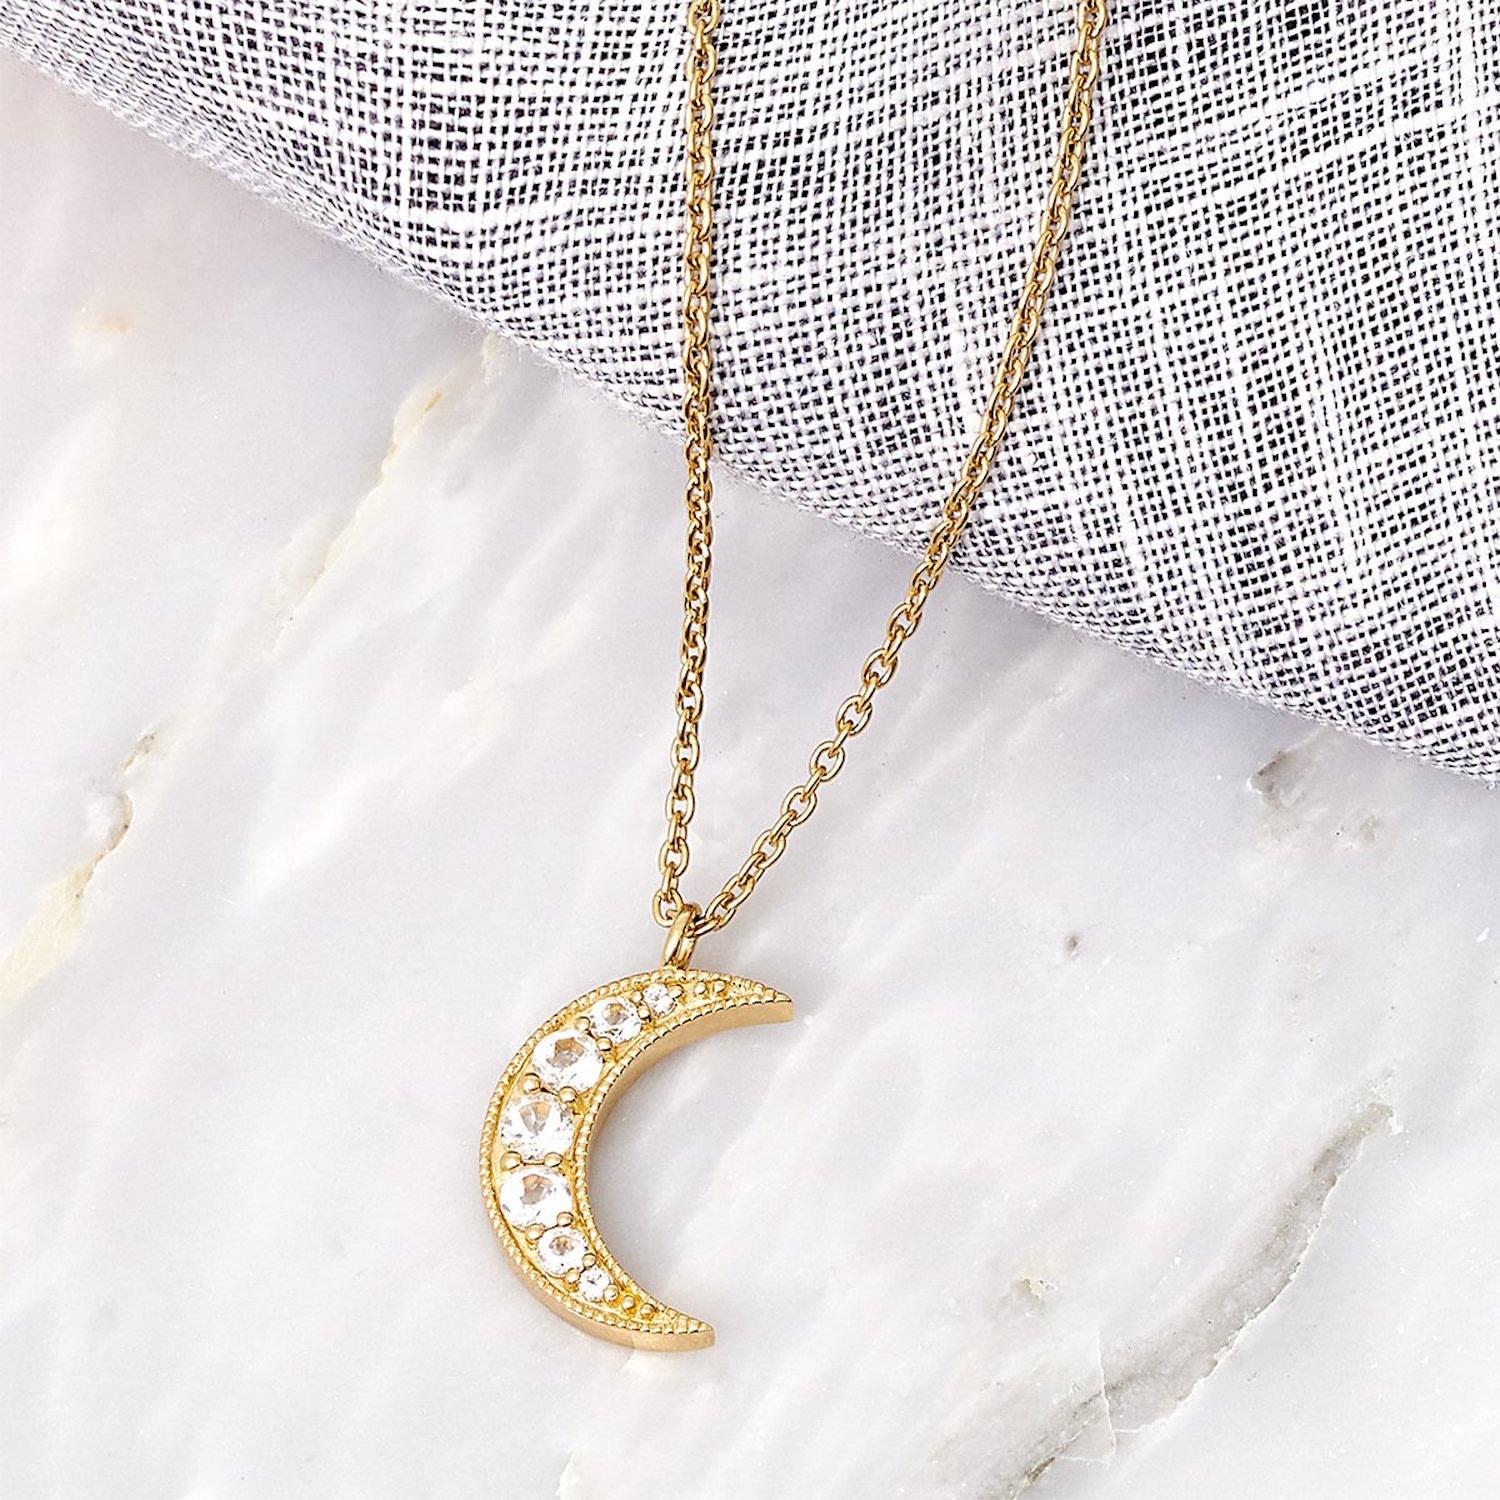 MONARC JEWELLERY Selene Necklace. 9ct Gold And White Topaz in Metallic